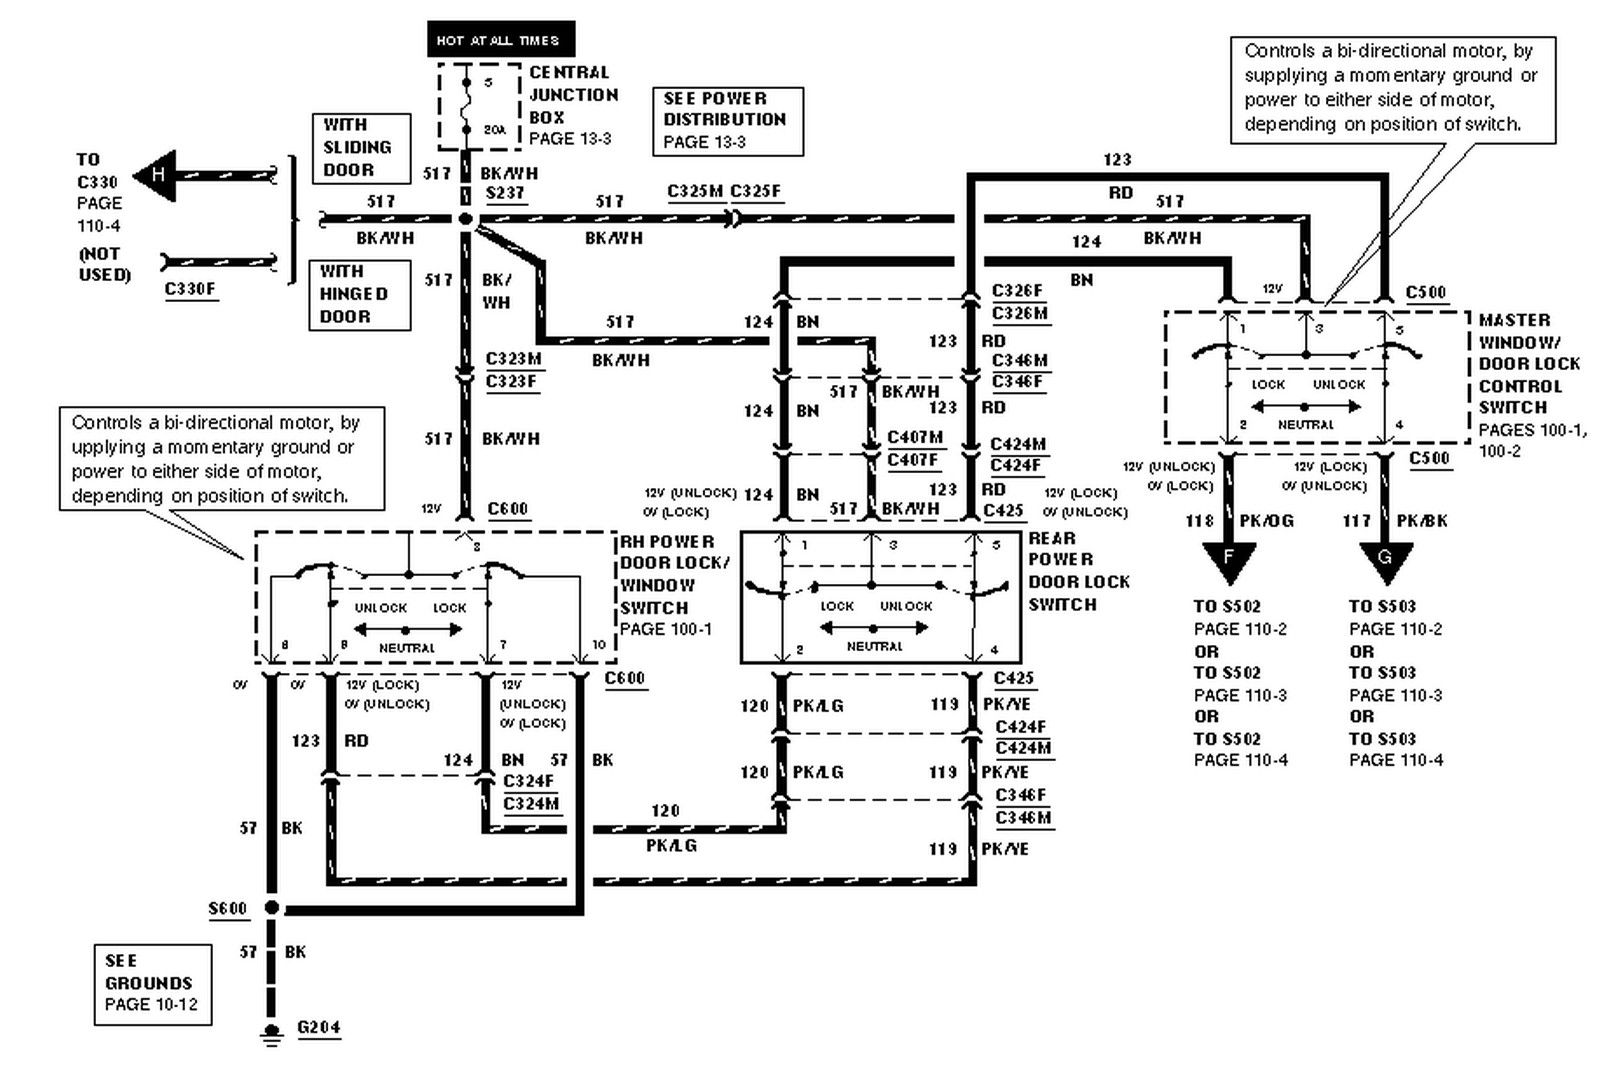 80 2010_11_05_235941_99_e_350_power_door_lock_wiring_diagram_e574233ae37af9677ff5fddb790386a28f9dd7ad ford f150 wiring diagram vehiclepad readingrat net Jeep Power Door Lock Wiring Diagram at nearapp.co